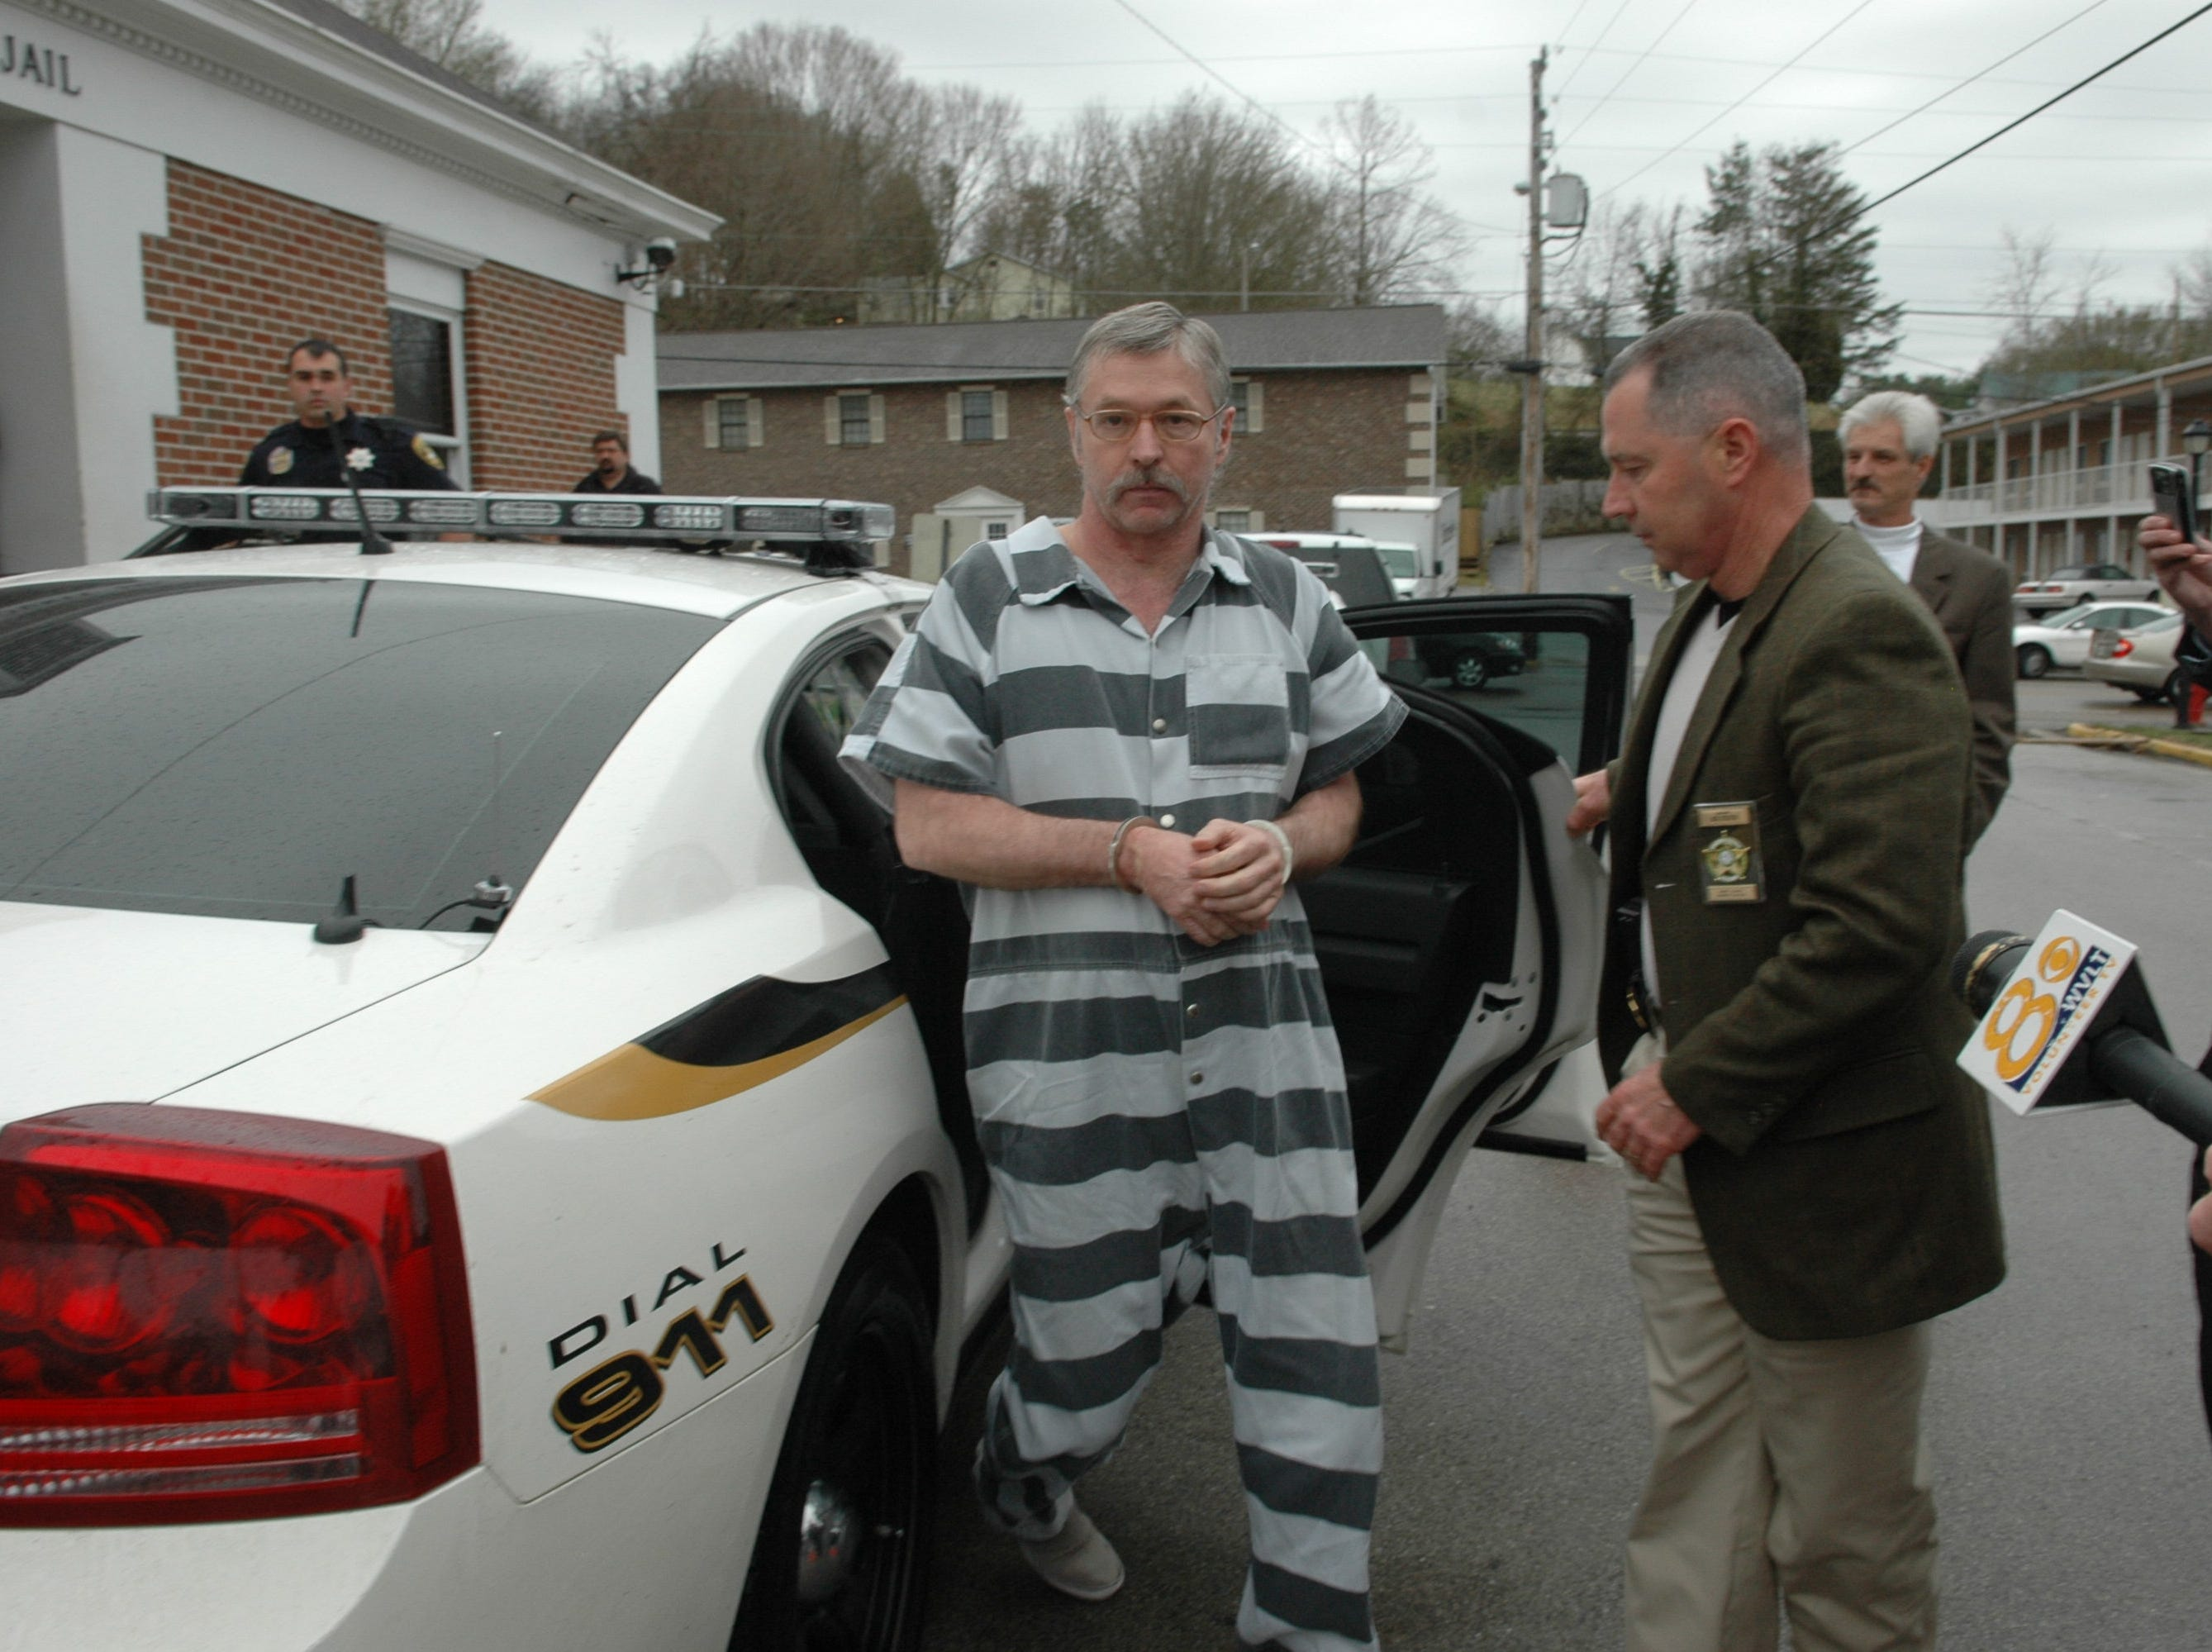 Murder defendent Rocky Houston arrrives at the Roane County jail to be released on bond on Thursday in Kingston. Houston and his brother, Leon, are charged with murder in the deaths of Roane County Deputy Bill Jones and his ride-along Mike Brown in a 2006 shootout.